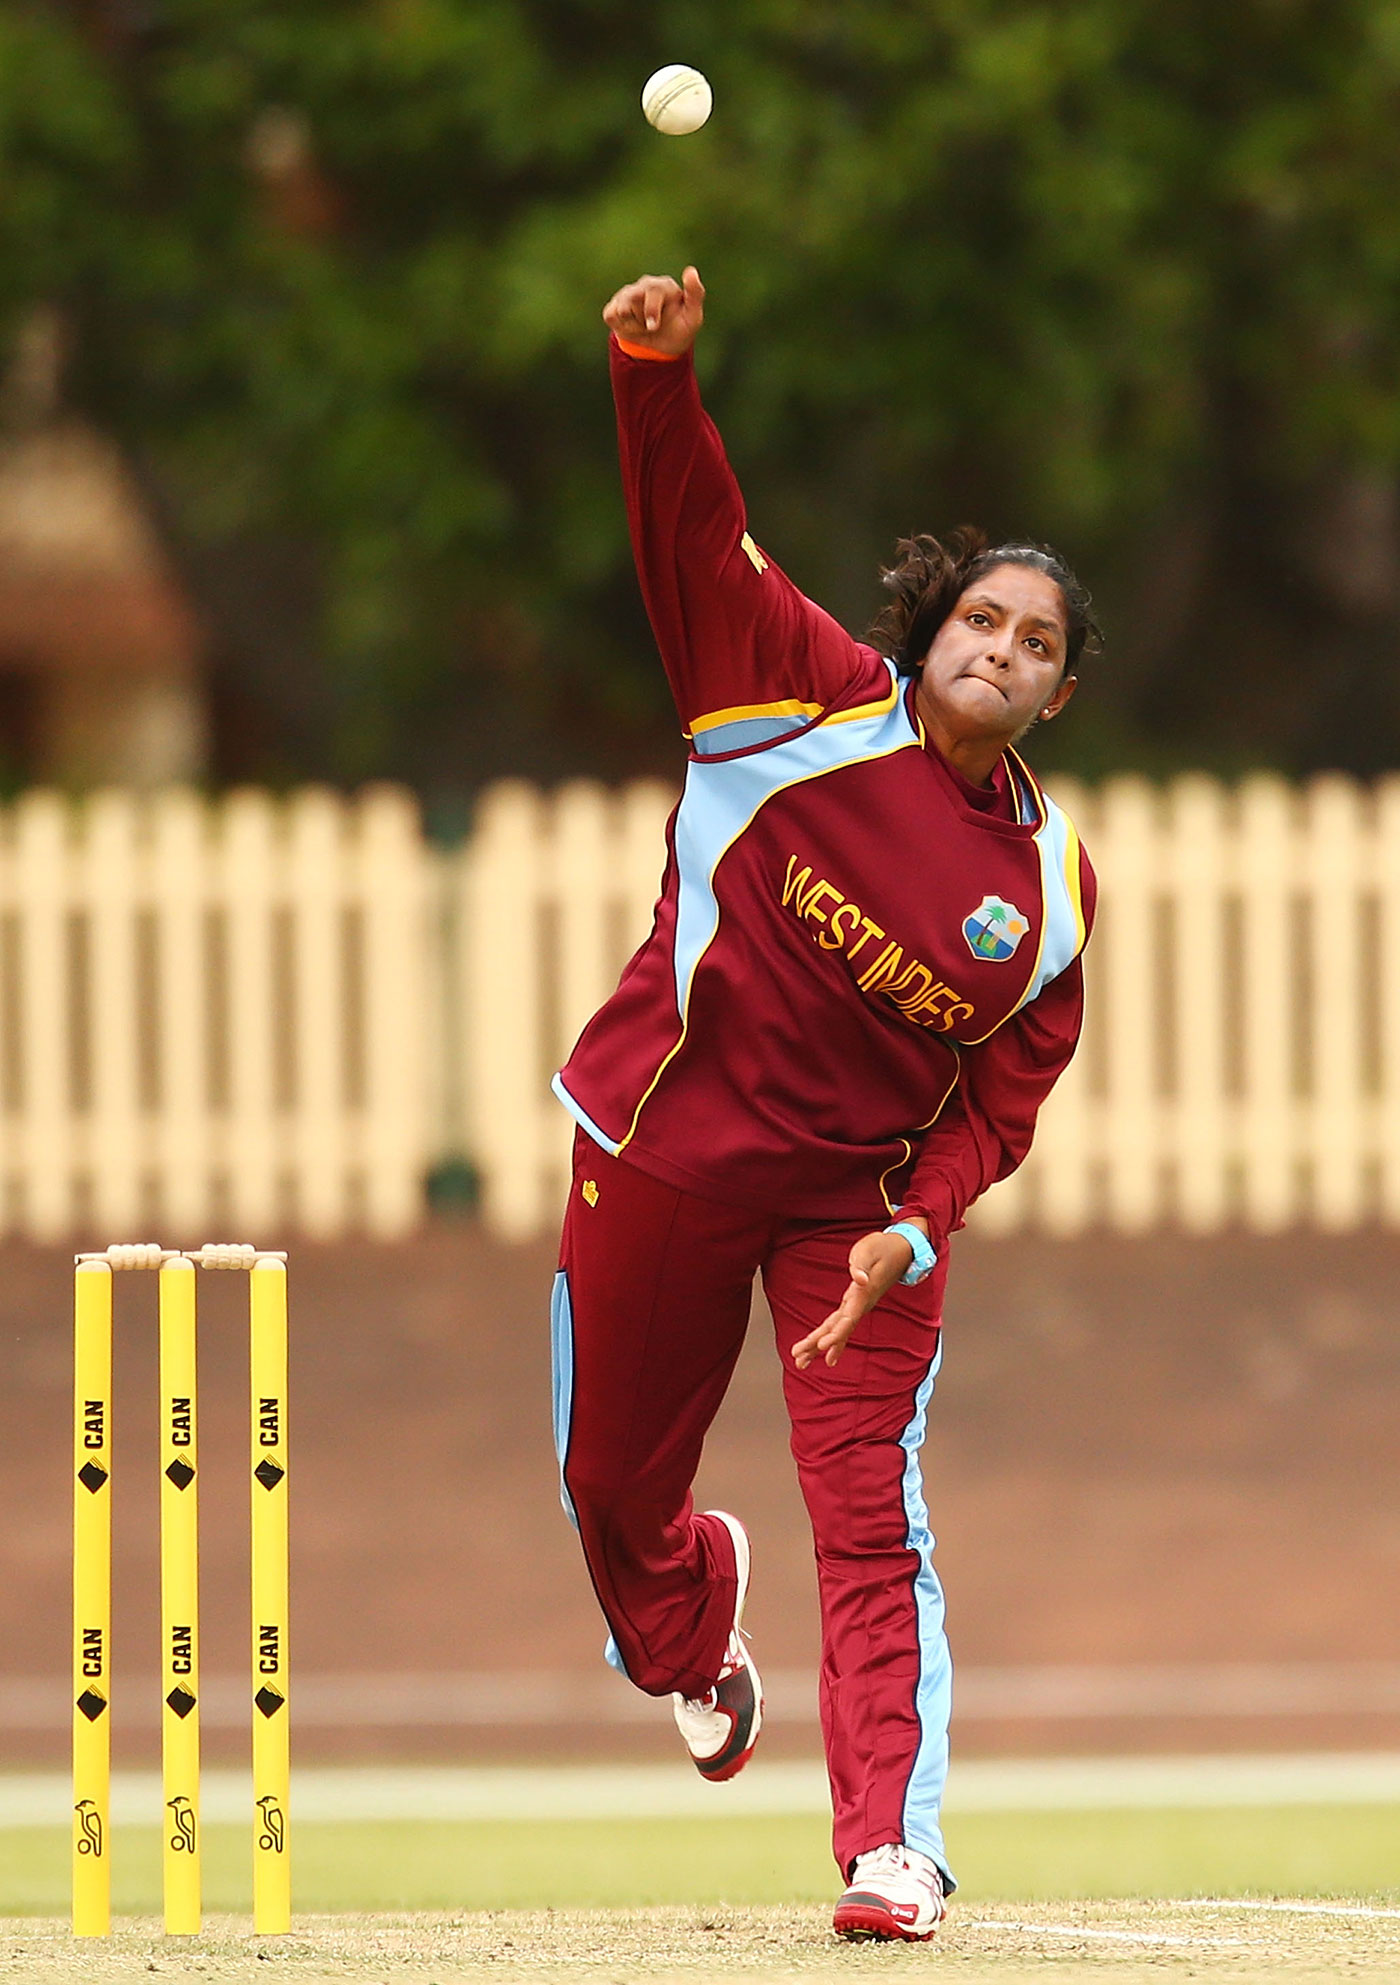 Mohammed is looking to become a coach after she quits playing